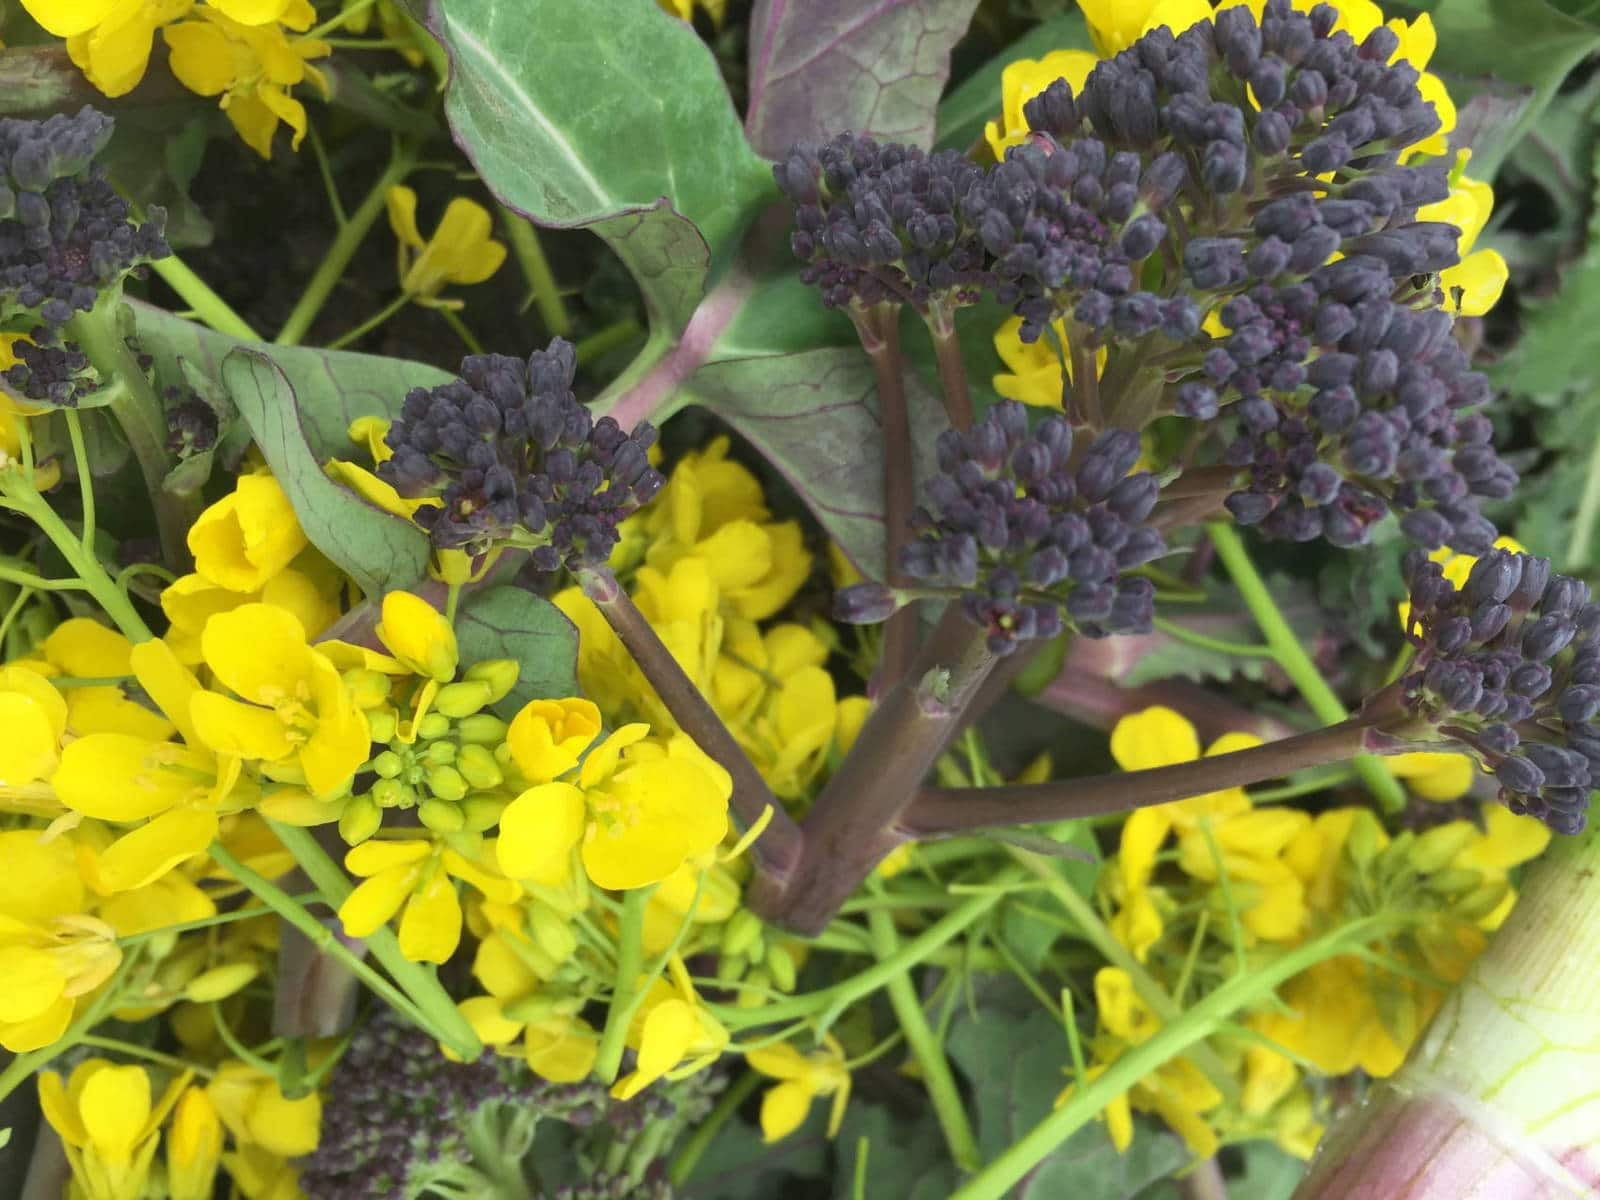 Edible flowers and late winter vegetables.